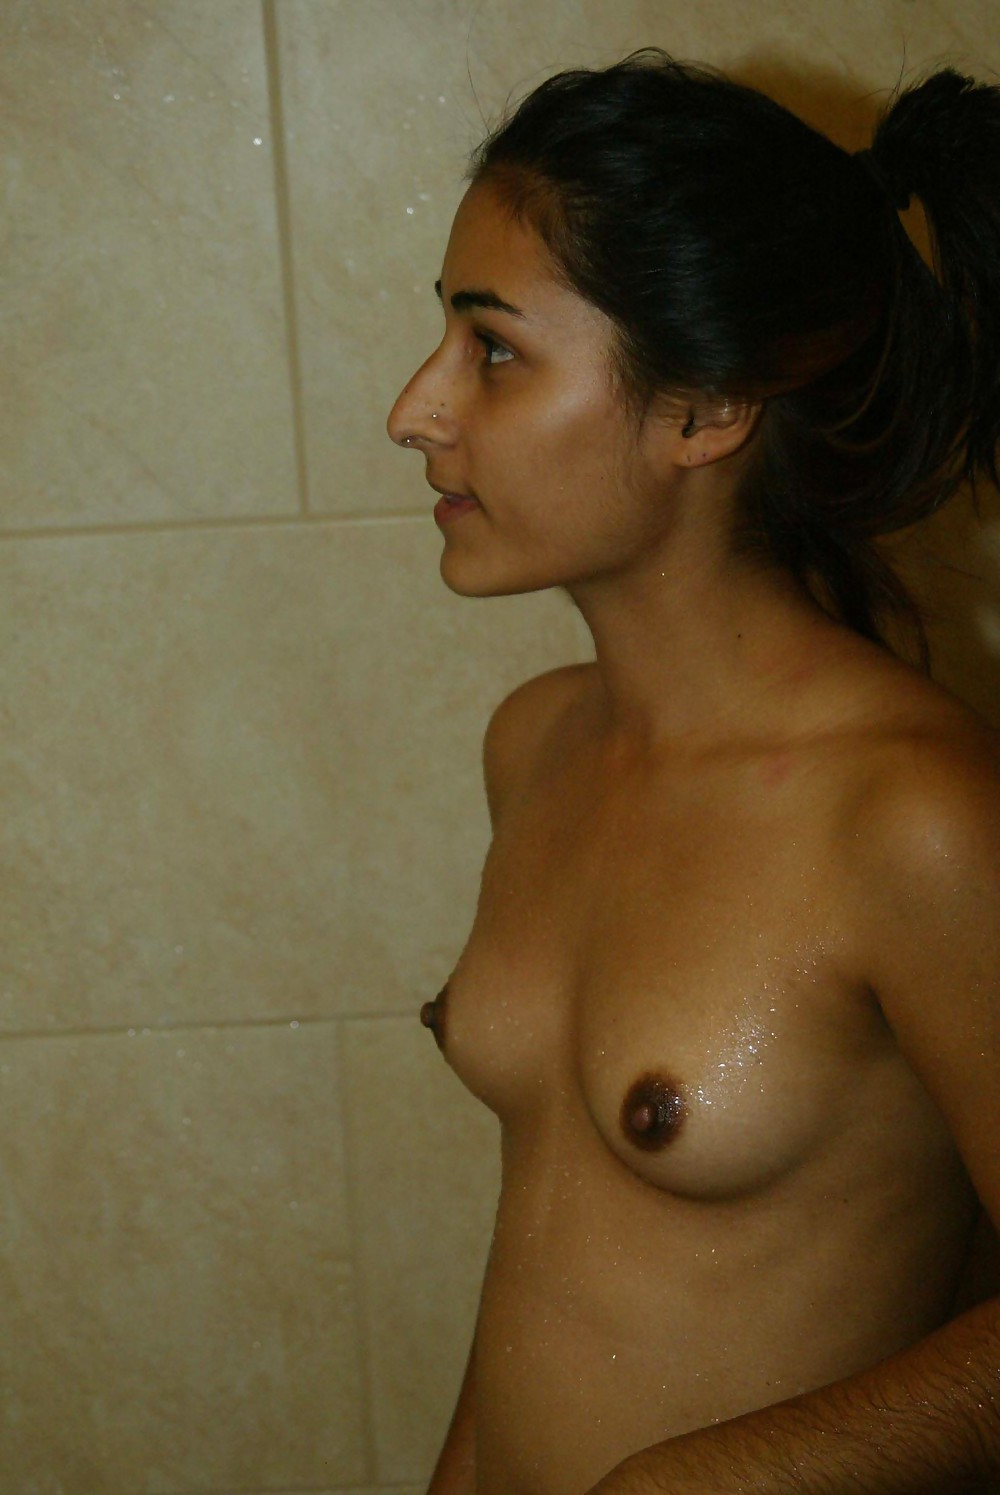 from Charles iranian nude young girls